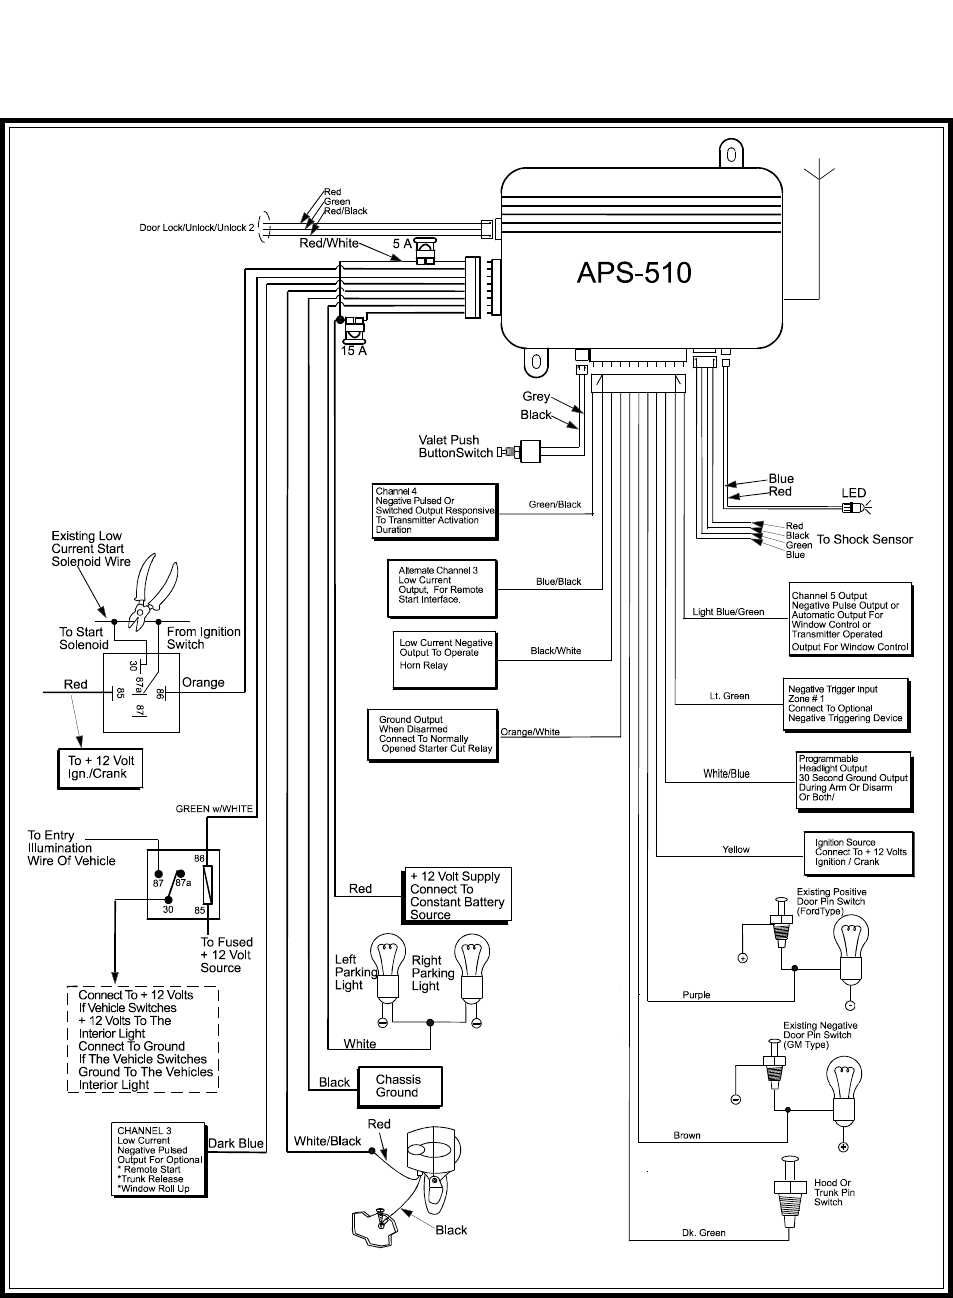 [SCHEMATICS_4UK]  Bulldog Security Keyless Wiring Diagrams - Mercedes Benz C240 Fuse Box  Diagram For 2002 for Wiring Diagram Schematics | Bulldog Deluxe Wiring Diagram |  | Wiring Diagram Schematics